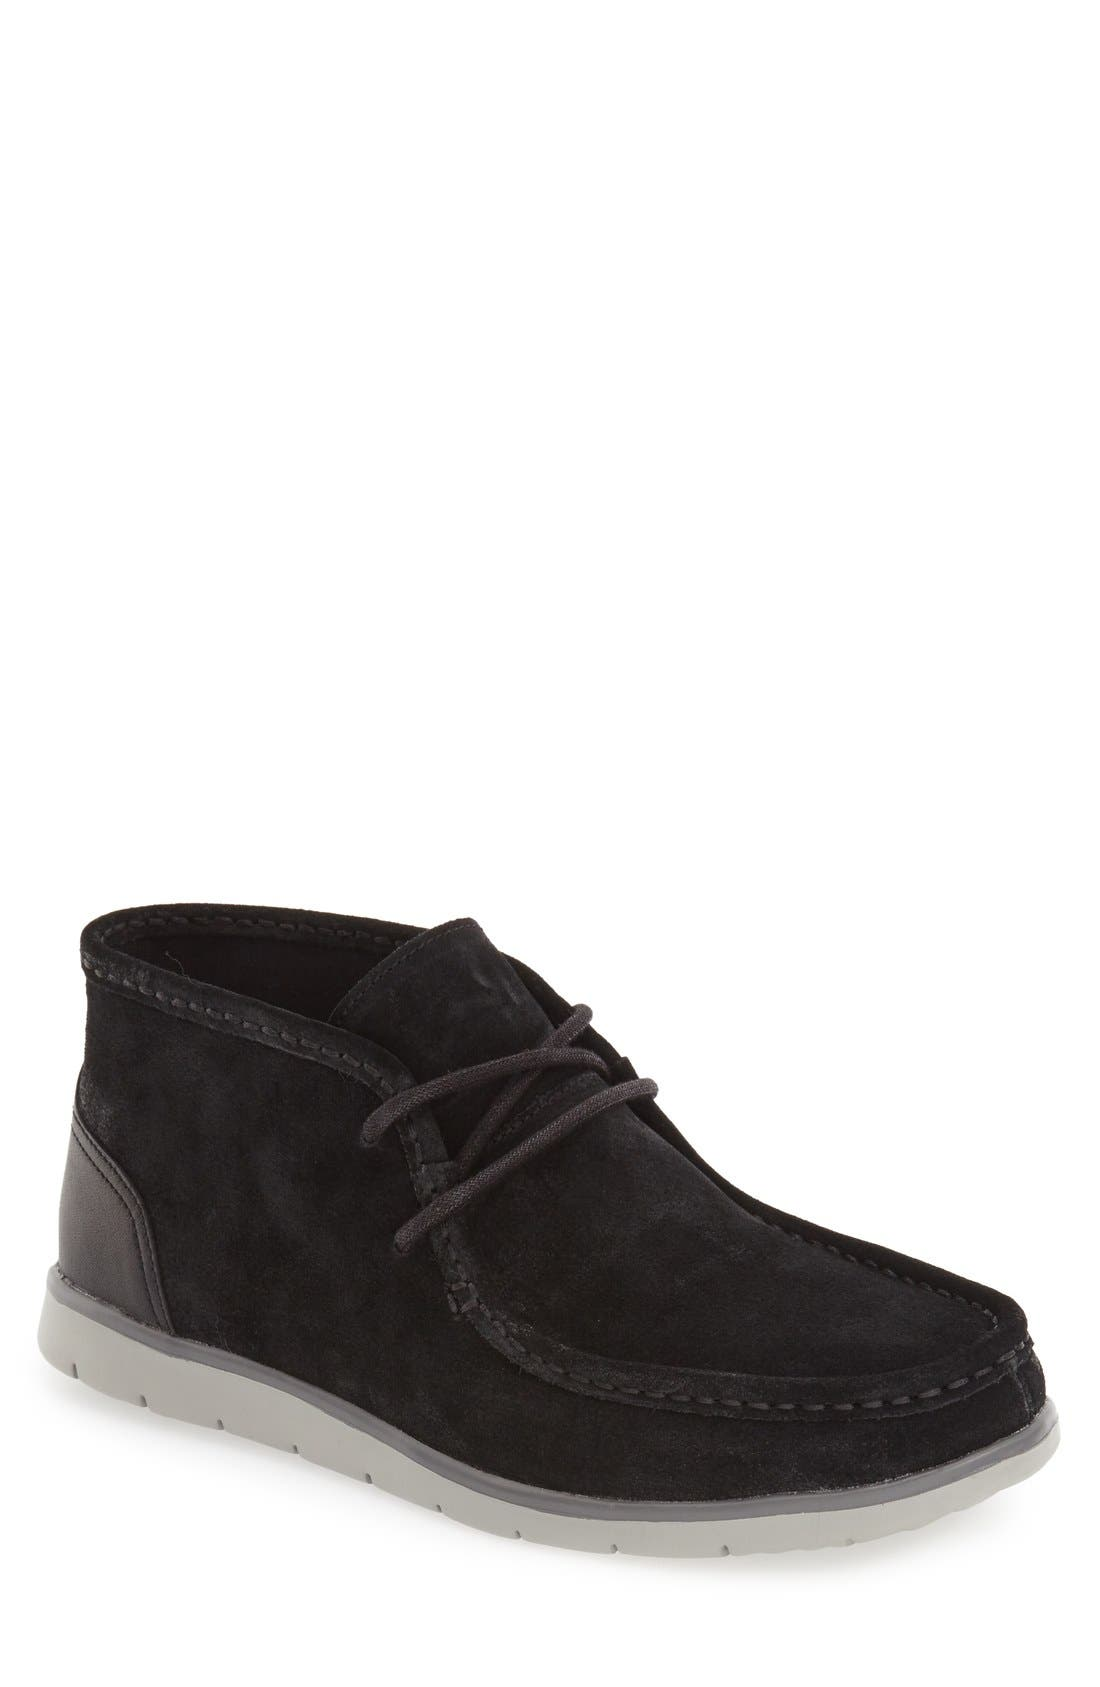 Main Image - UGG® 'Hendrickson' Chukka Boot (Men)